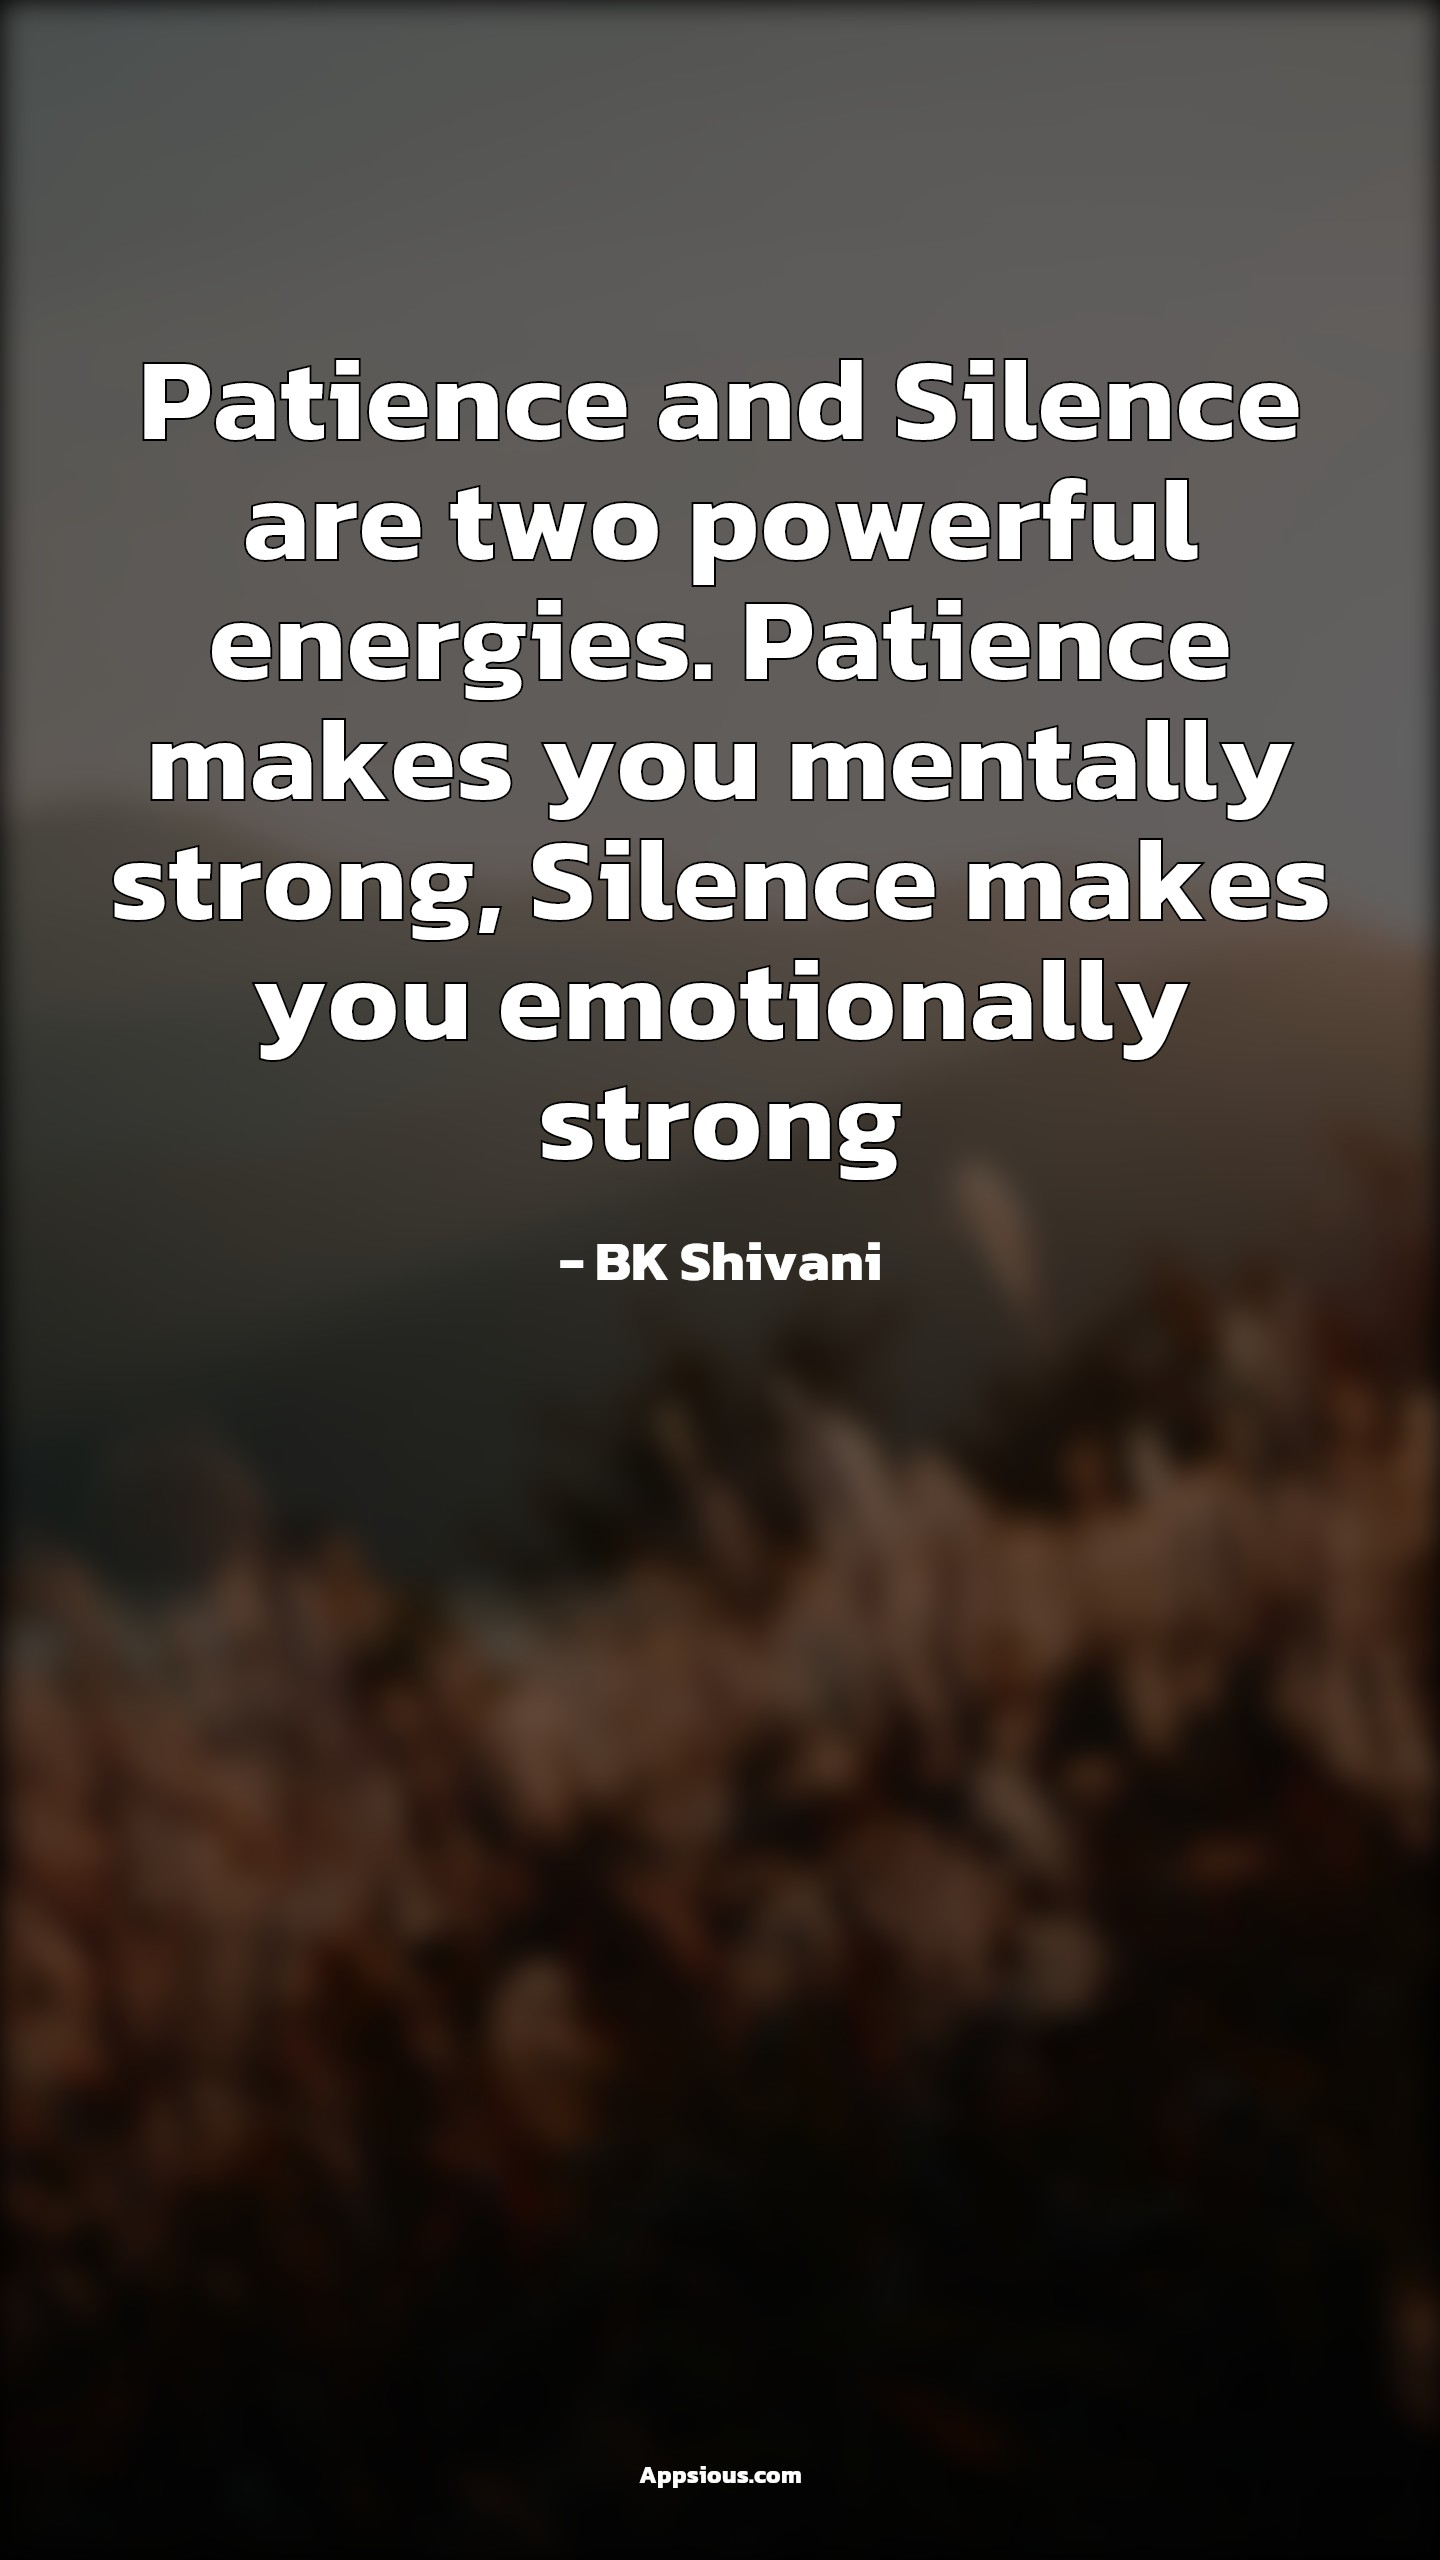 Patience and Silence are two powerful energies. Patience makes you mentally strong, Silence makes you emotionally strong